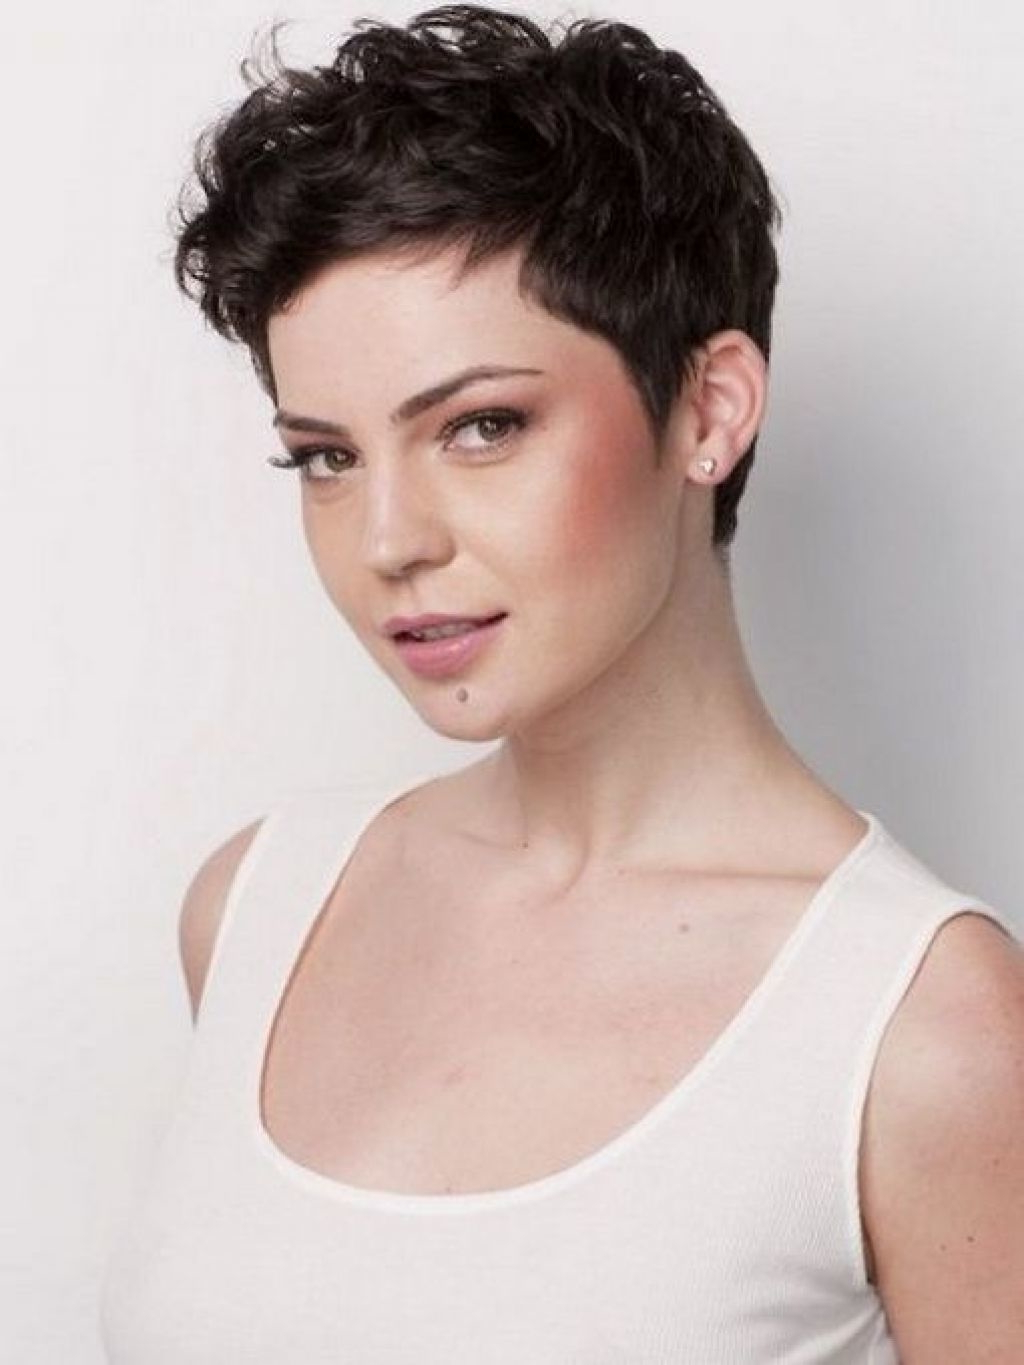 Short Pixie Haircuts For Thick Hair – Short And Cuts Hairstyles Within Short Hairstyles For Very Thick Hair (View 24 of 25)